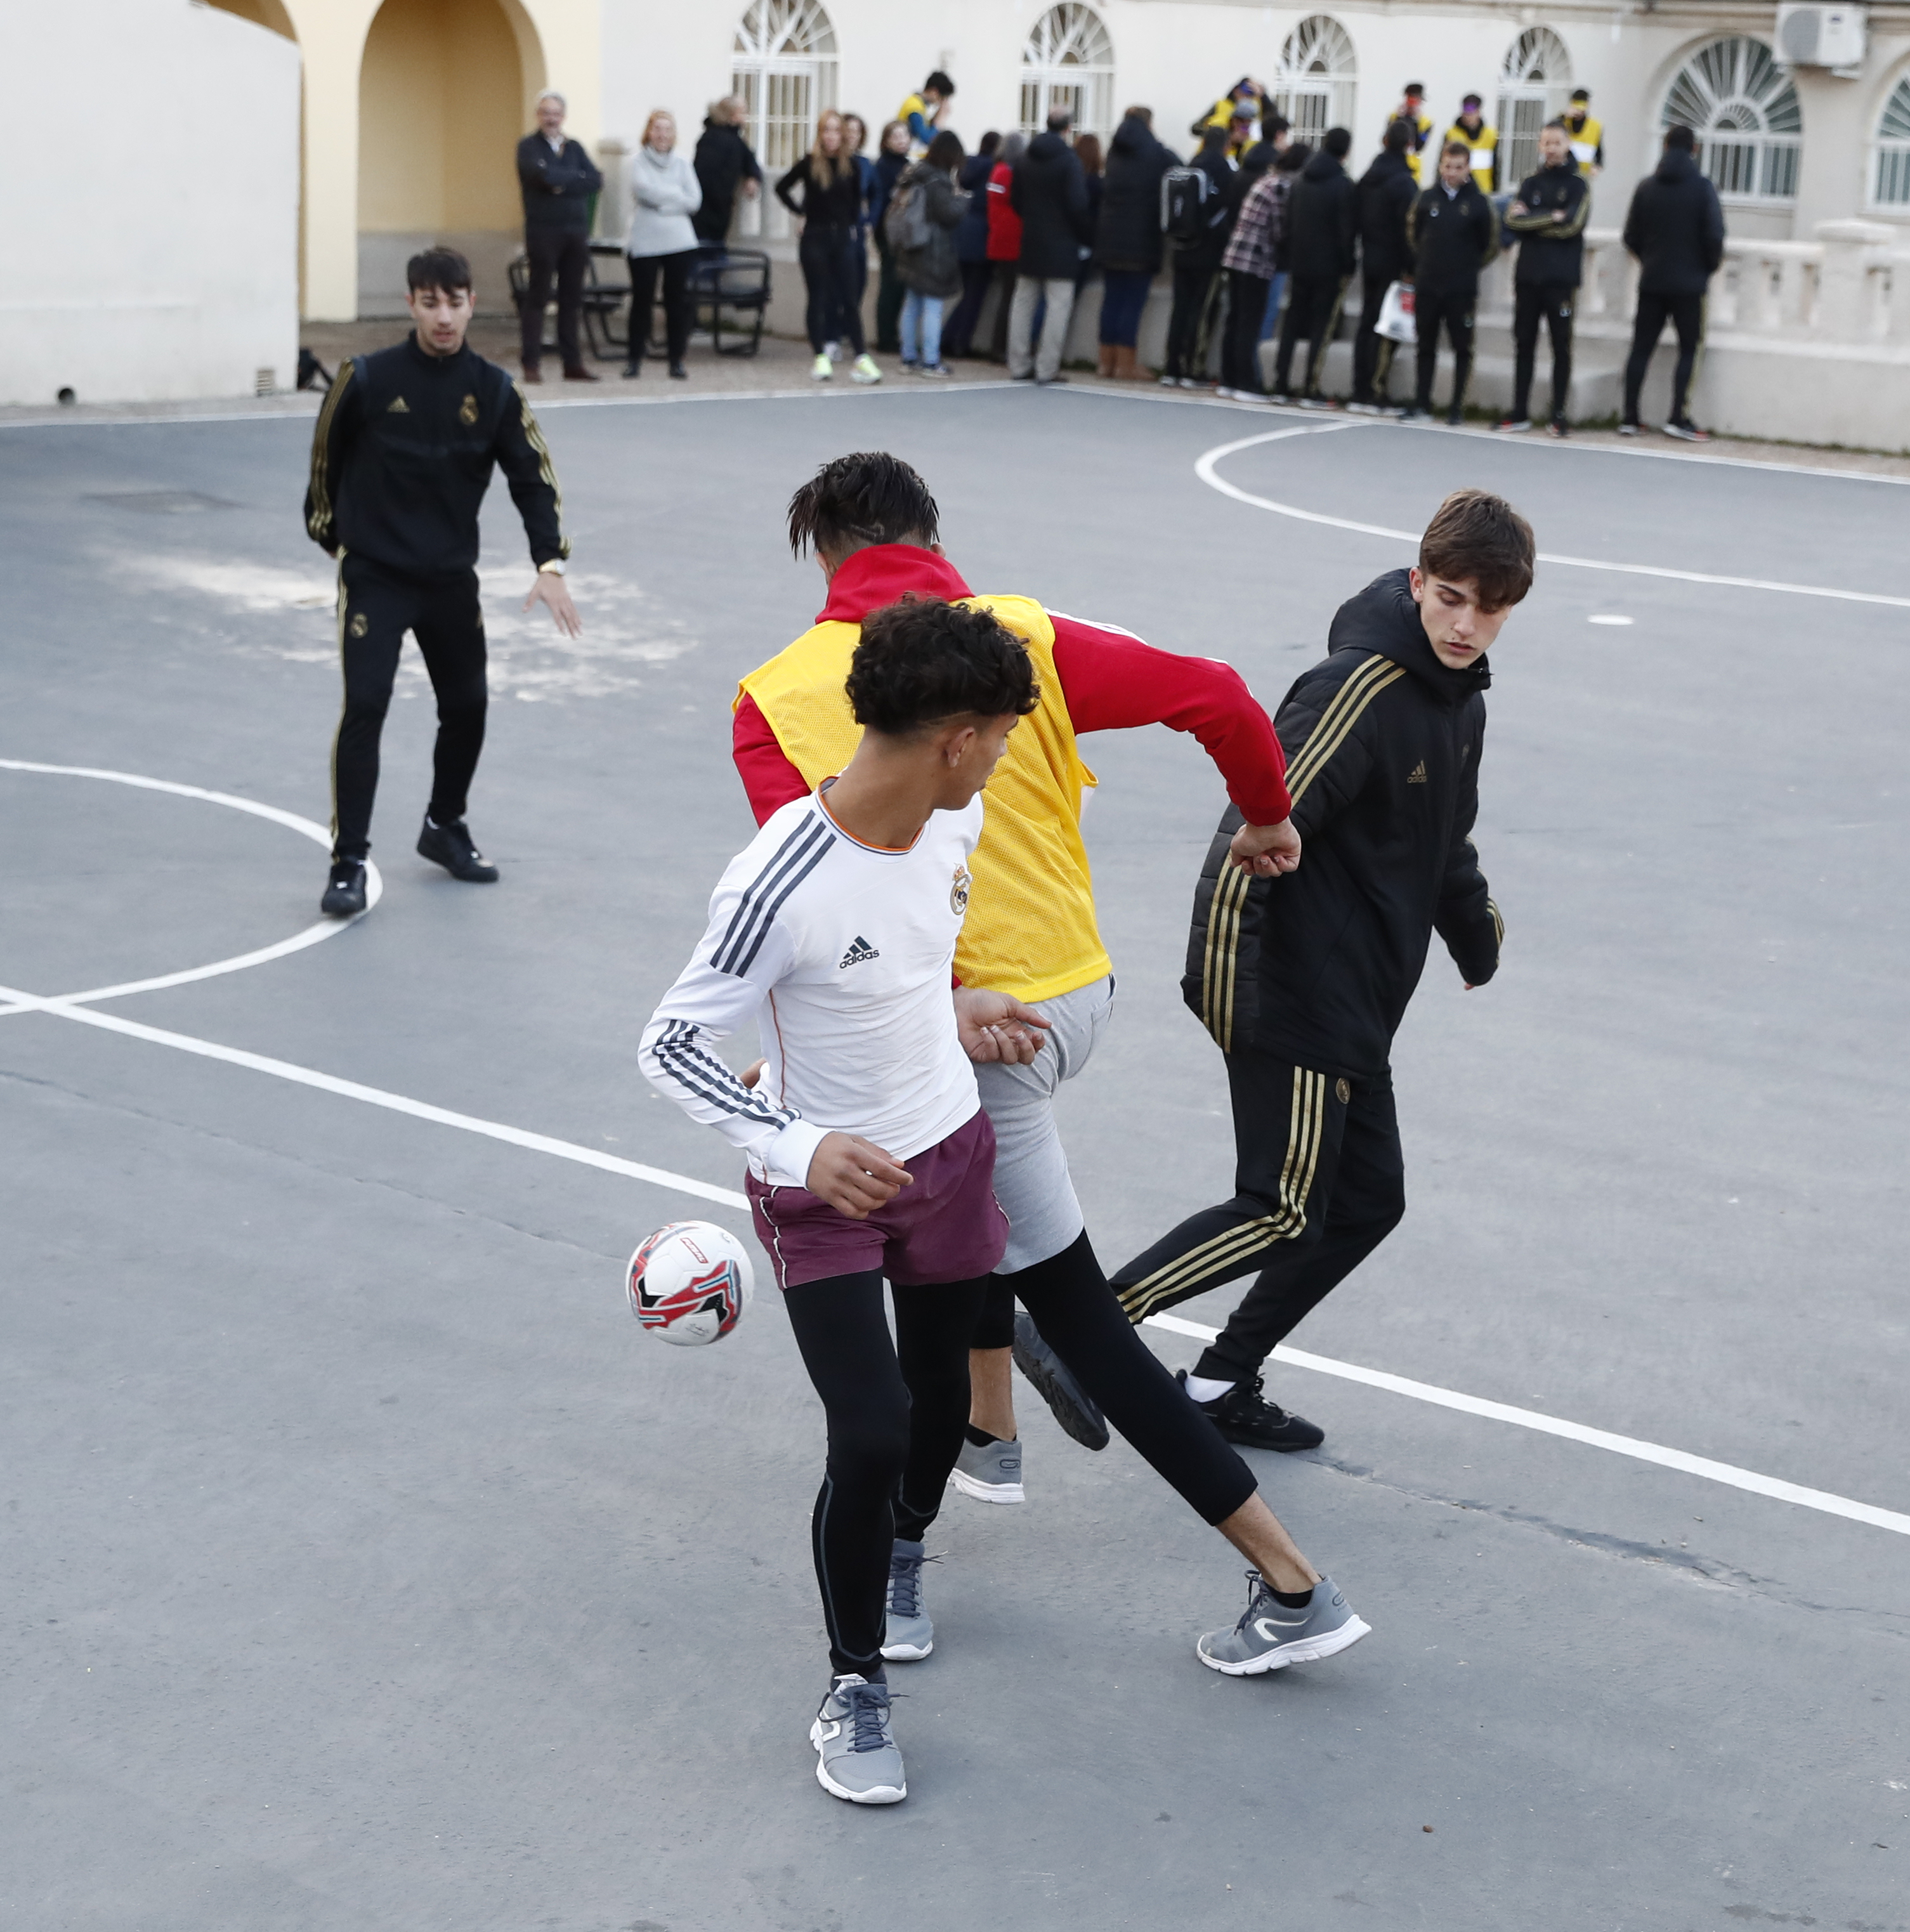 Real Madrid - visit of U16 to shelter homes Madrid